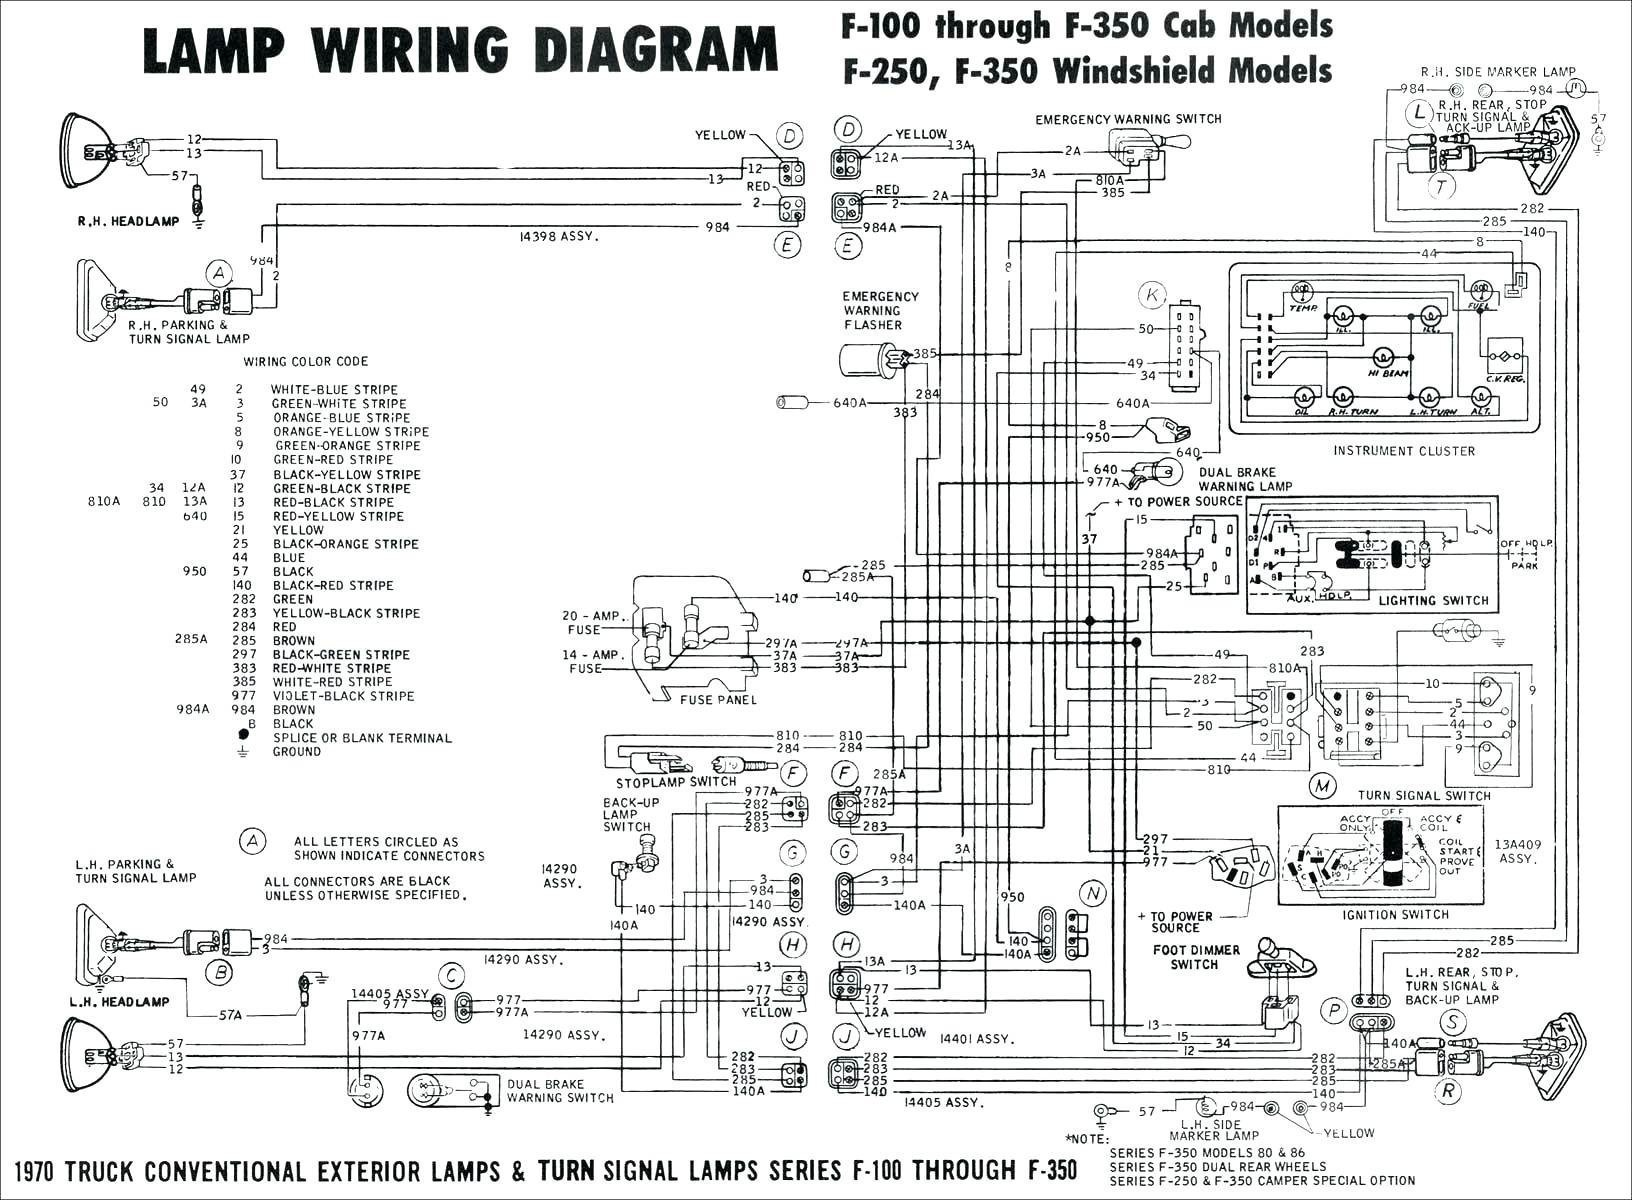 6 20R Receptacle Wiring Diagram | Wiring Diagram - Nema 6-20R Wiring Diagram